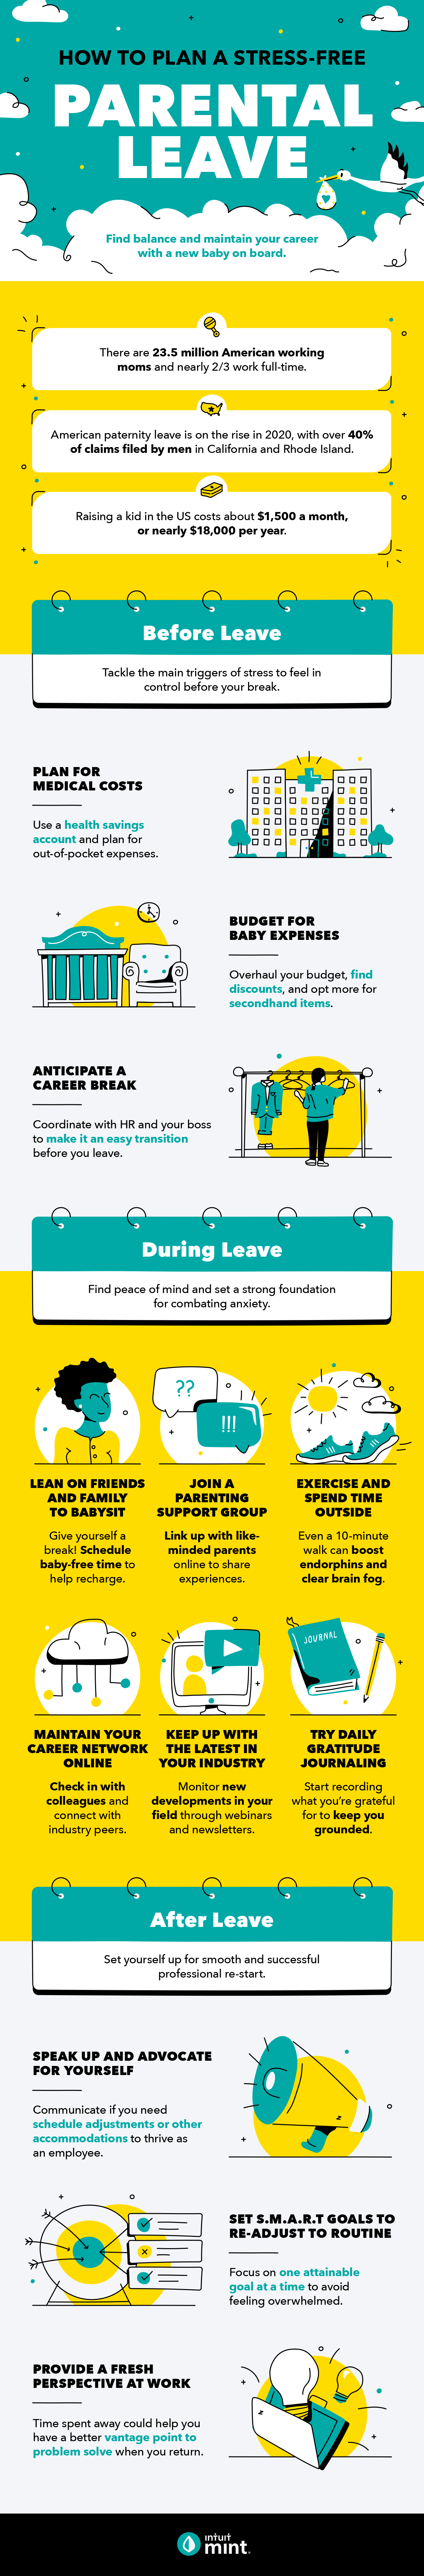 infographic with tips for a financially smart parental leave